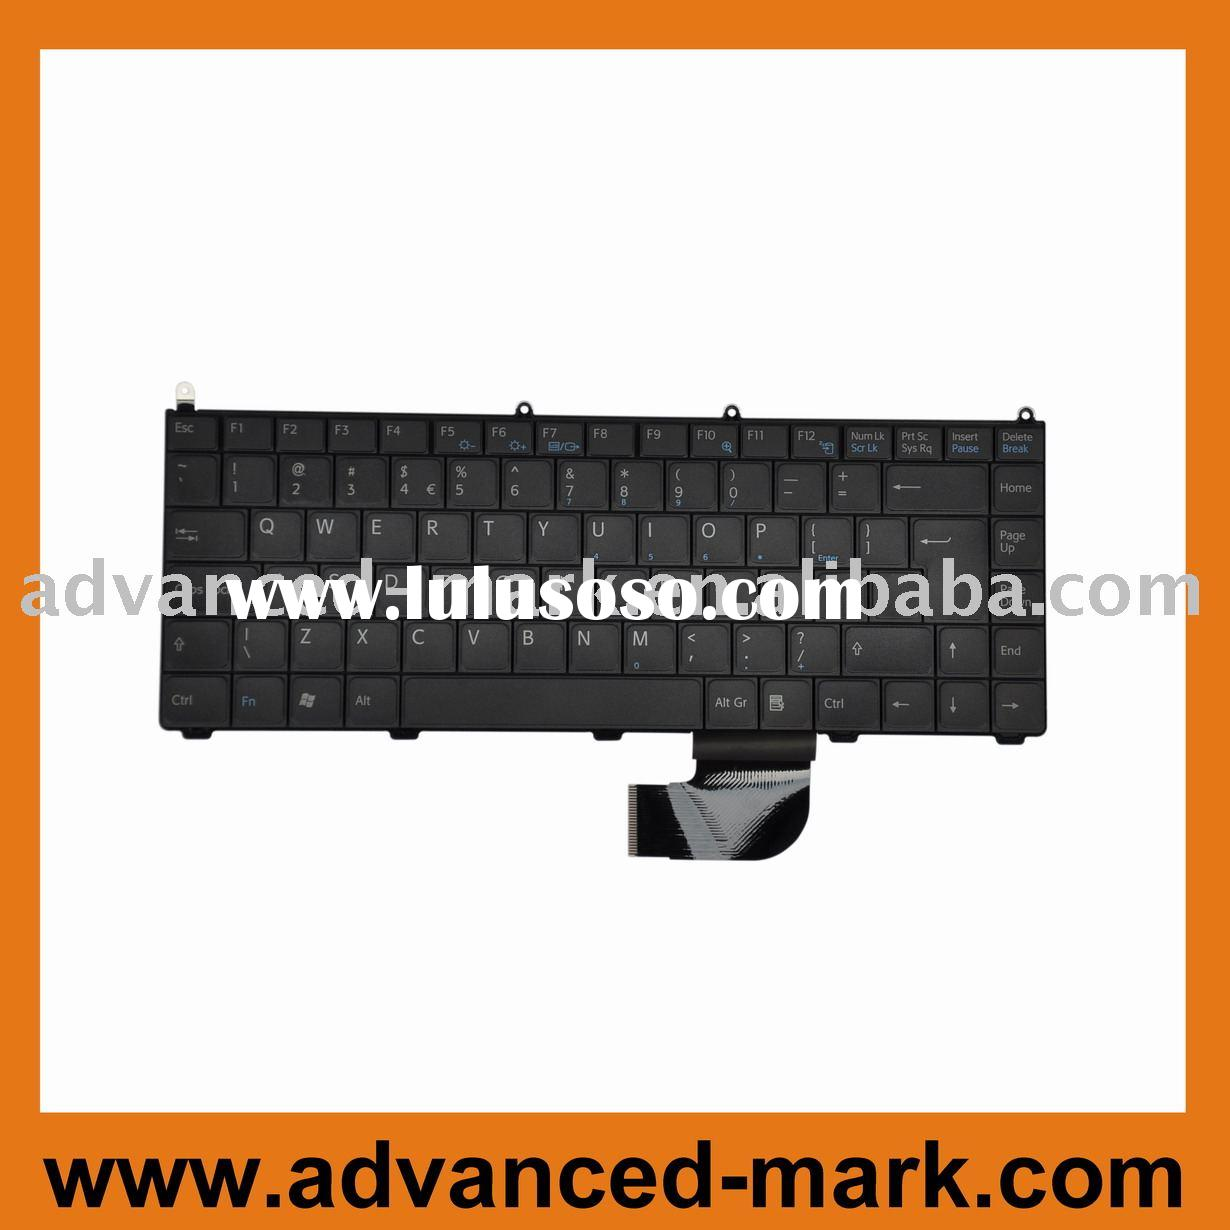 KFRSBA041A LAPTOP KEYBOARD